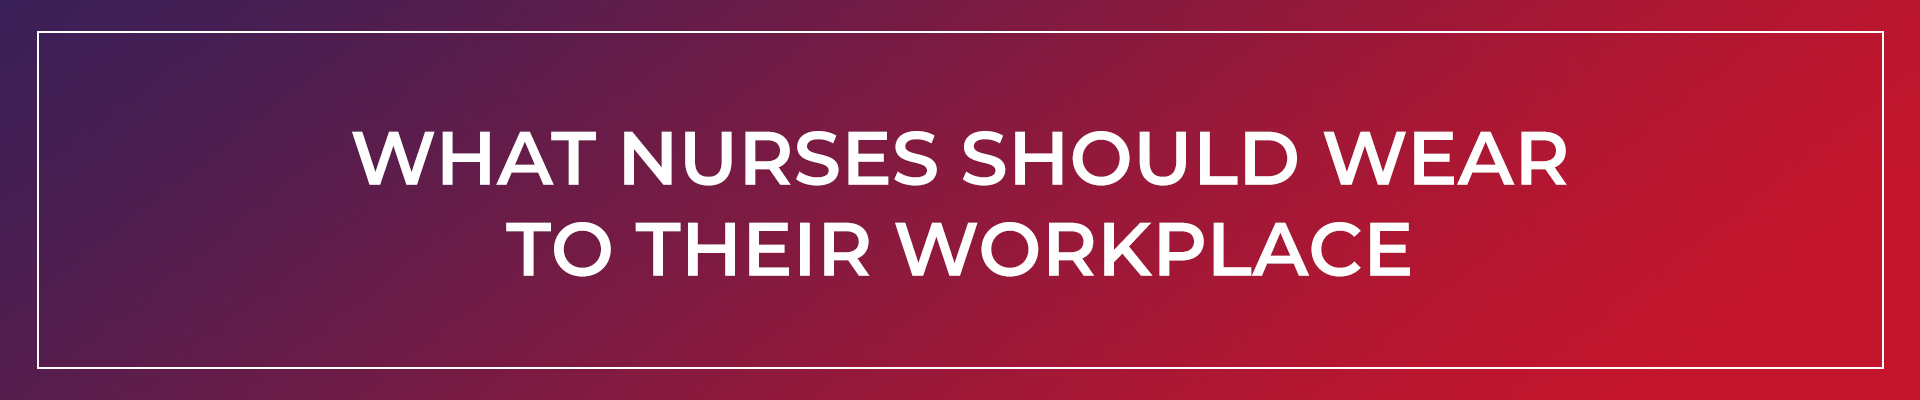 What Nurses Should Wear to Their Workplace